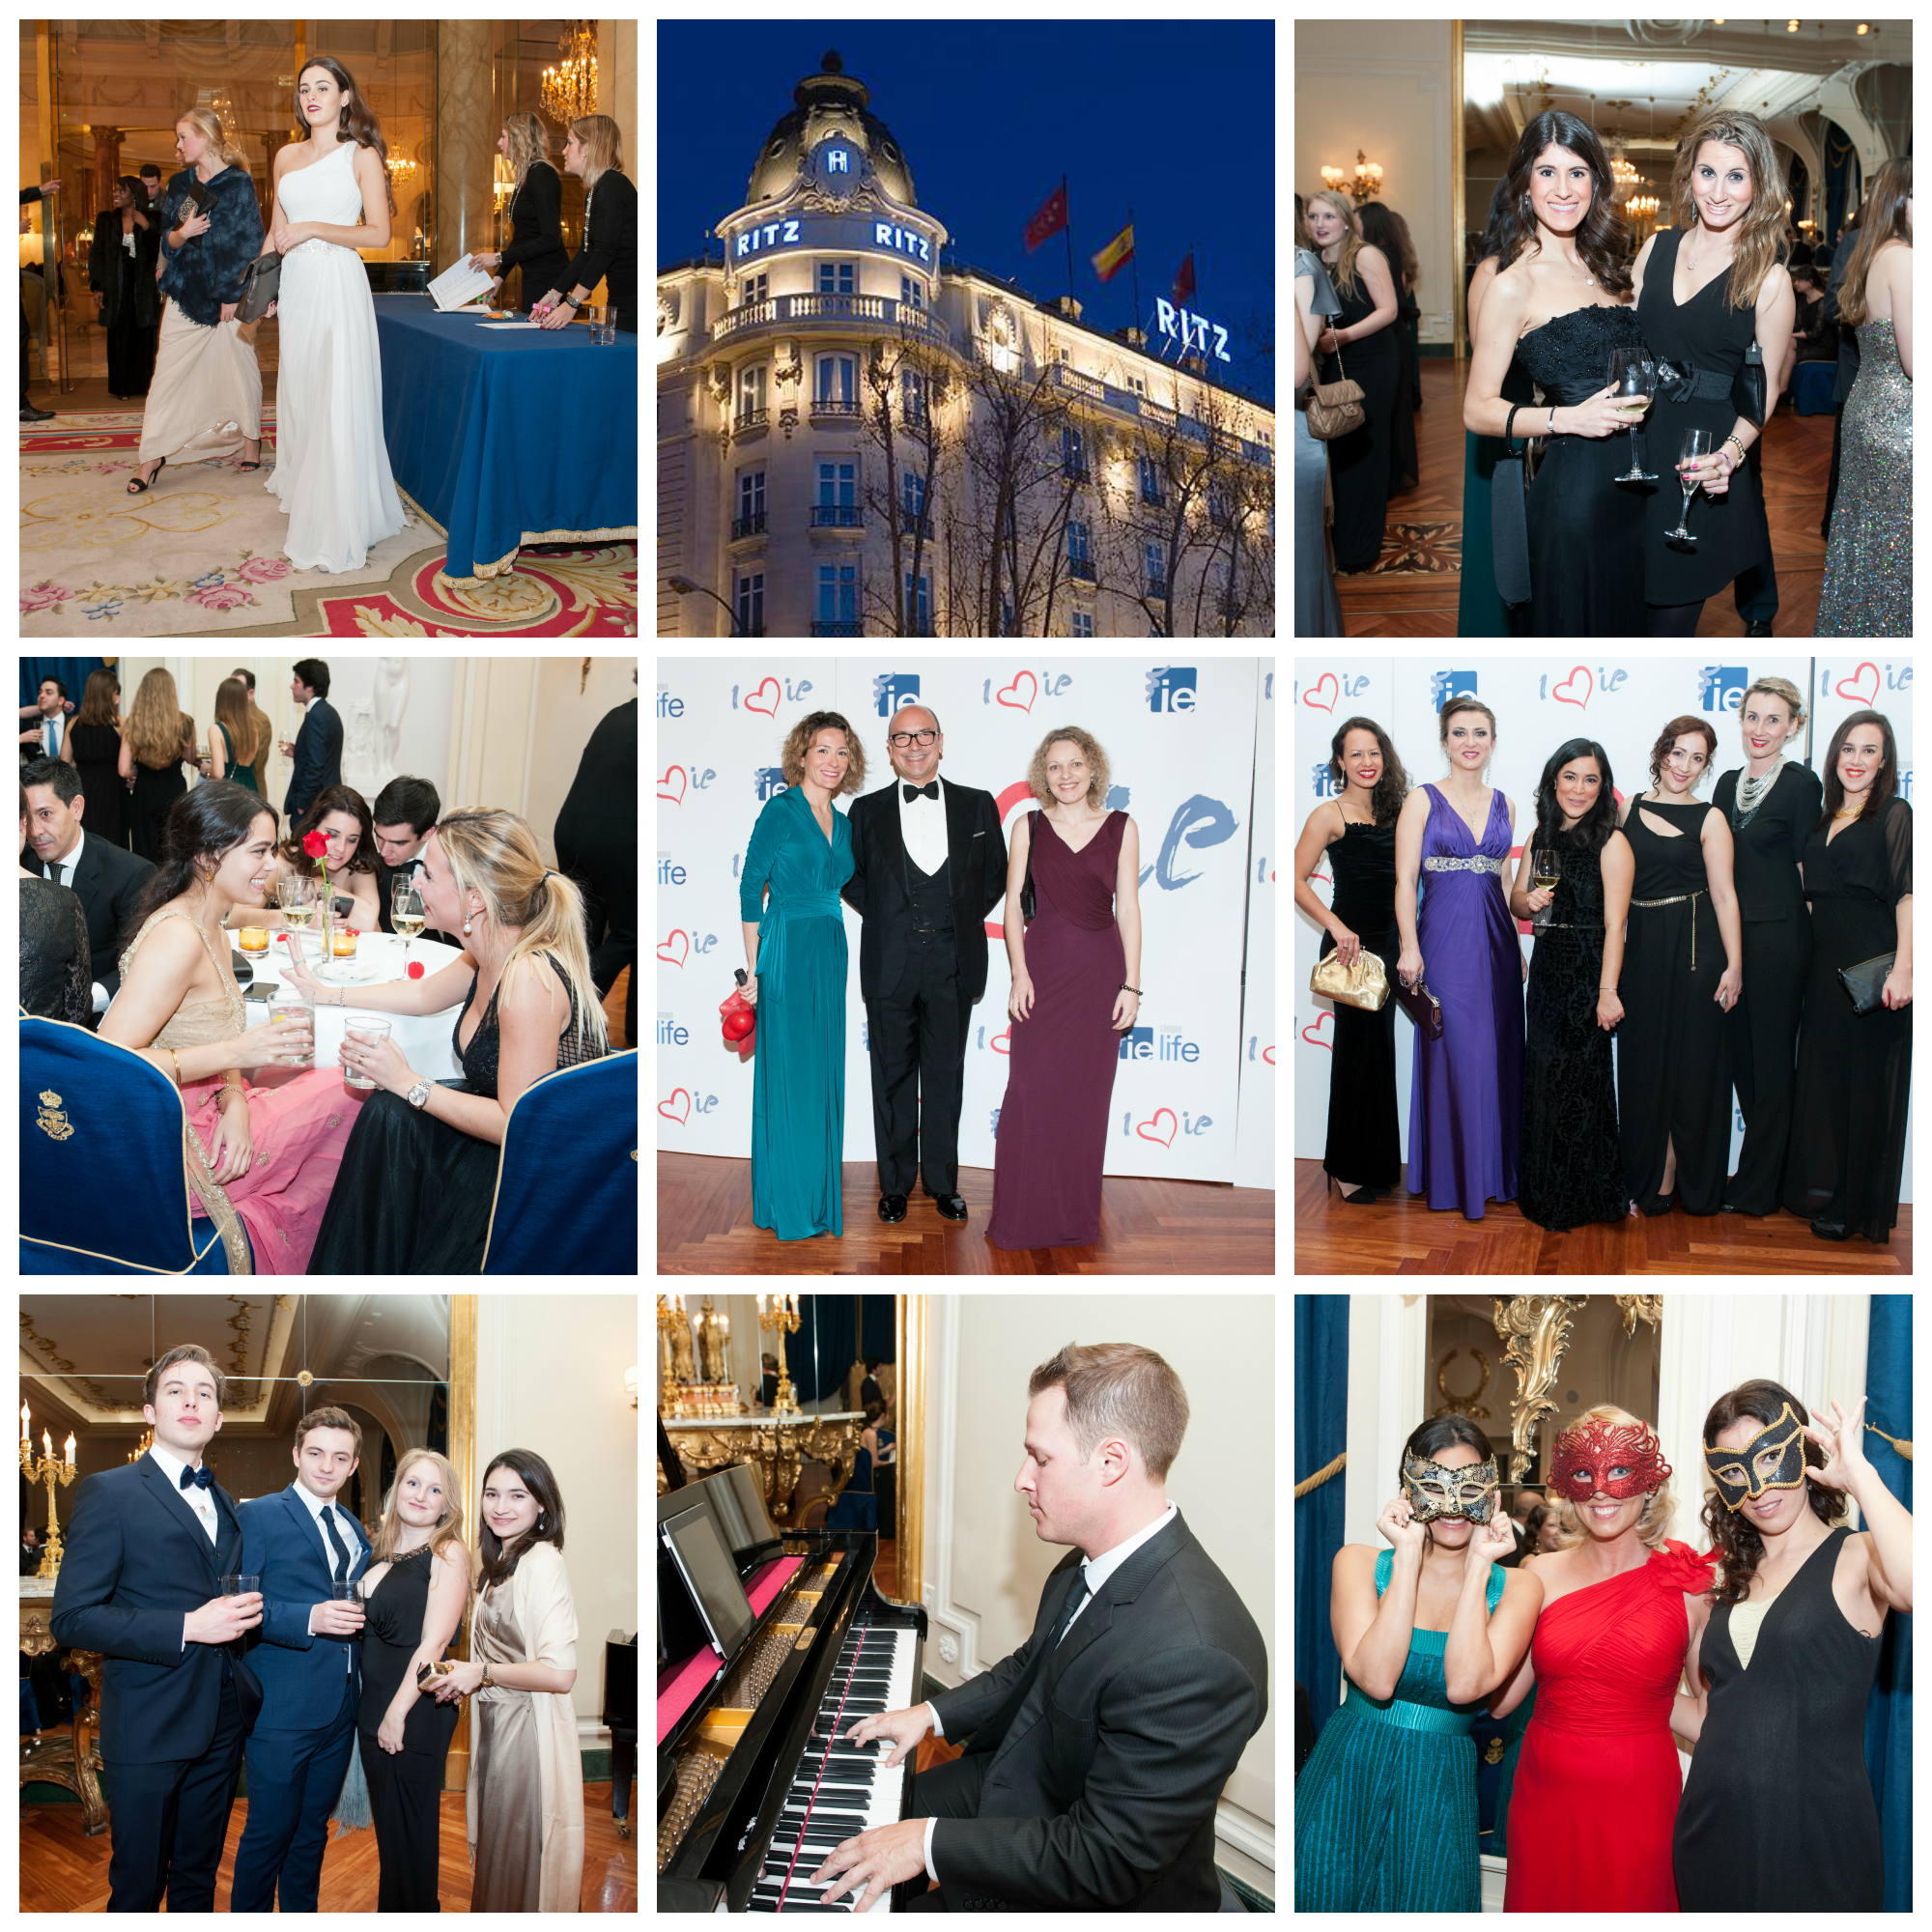 IE Winter ball Collage III